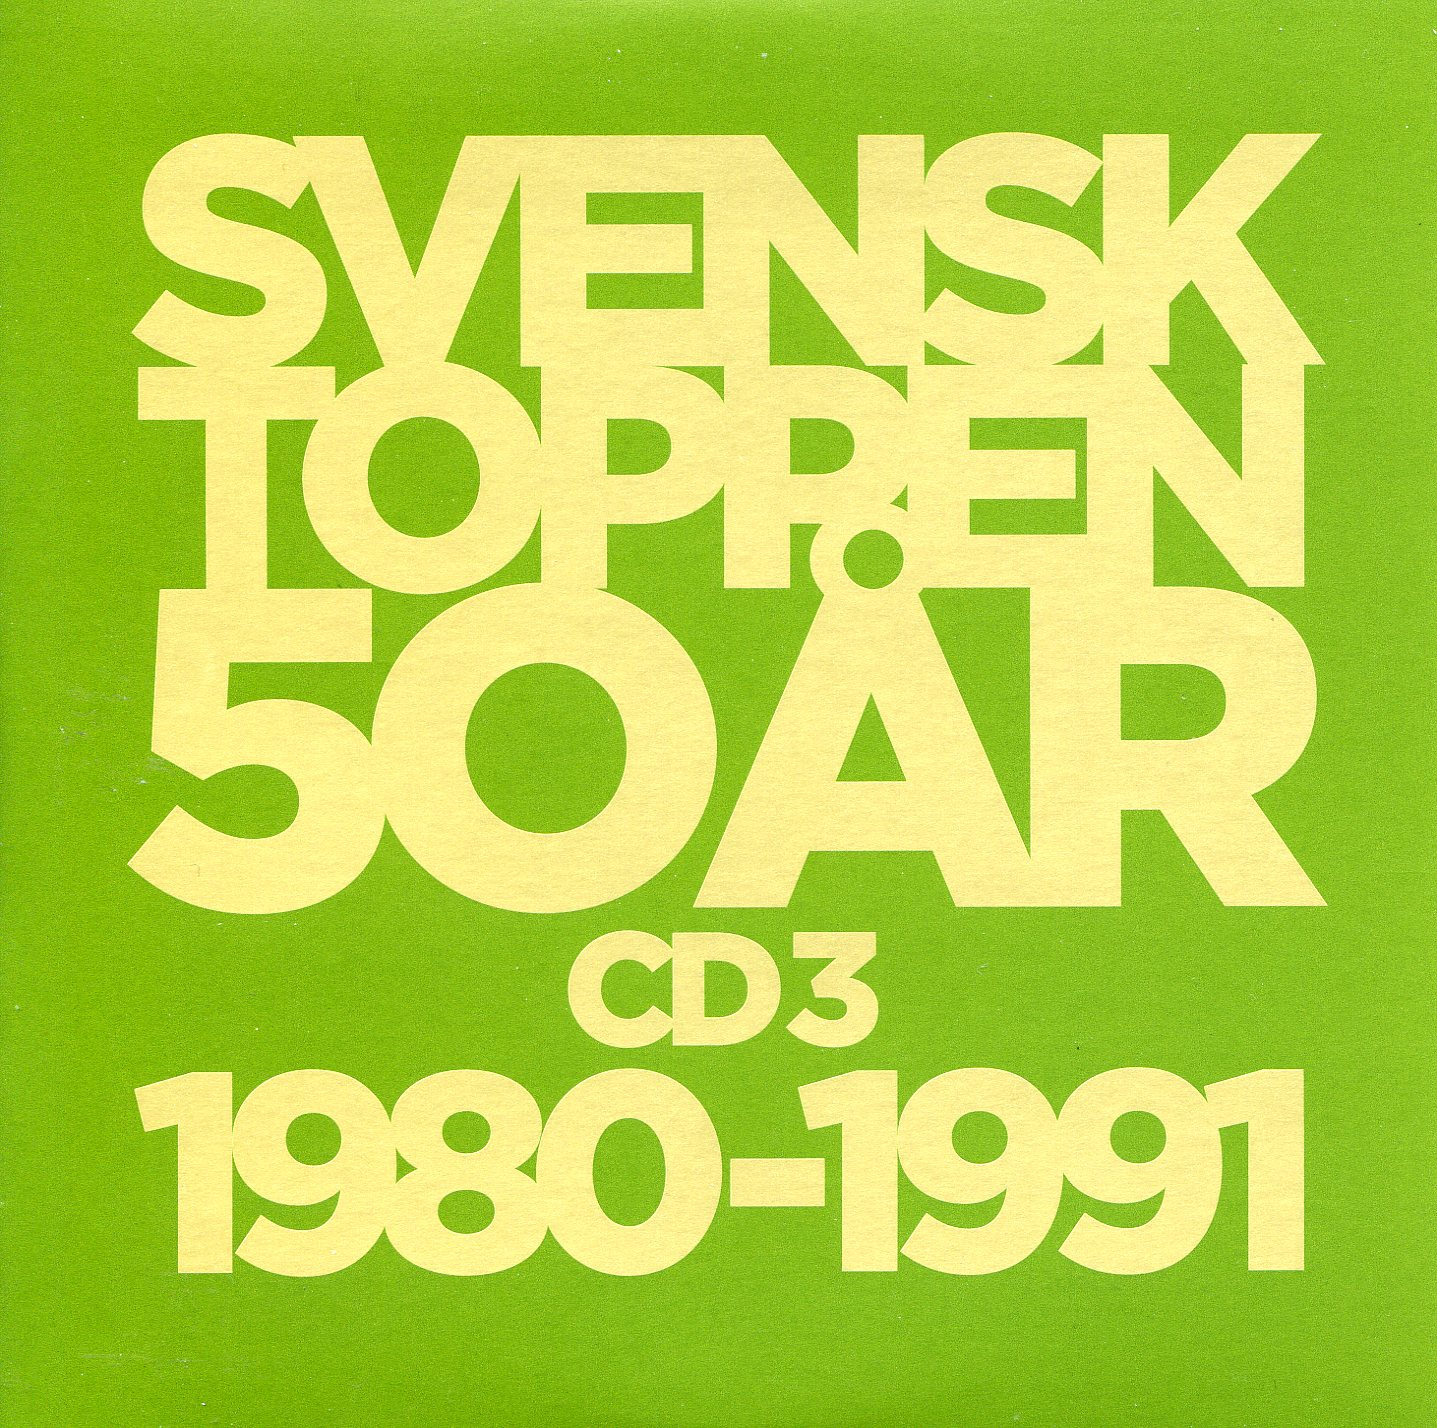 svensktoppen 50 år COVERS.BOX.SK ::: svensktoppen 50  r   5cd box (2012) cd 3   high  svensktoppen 50 år